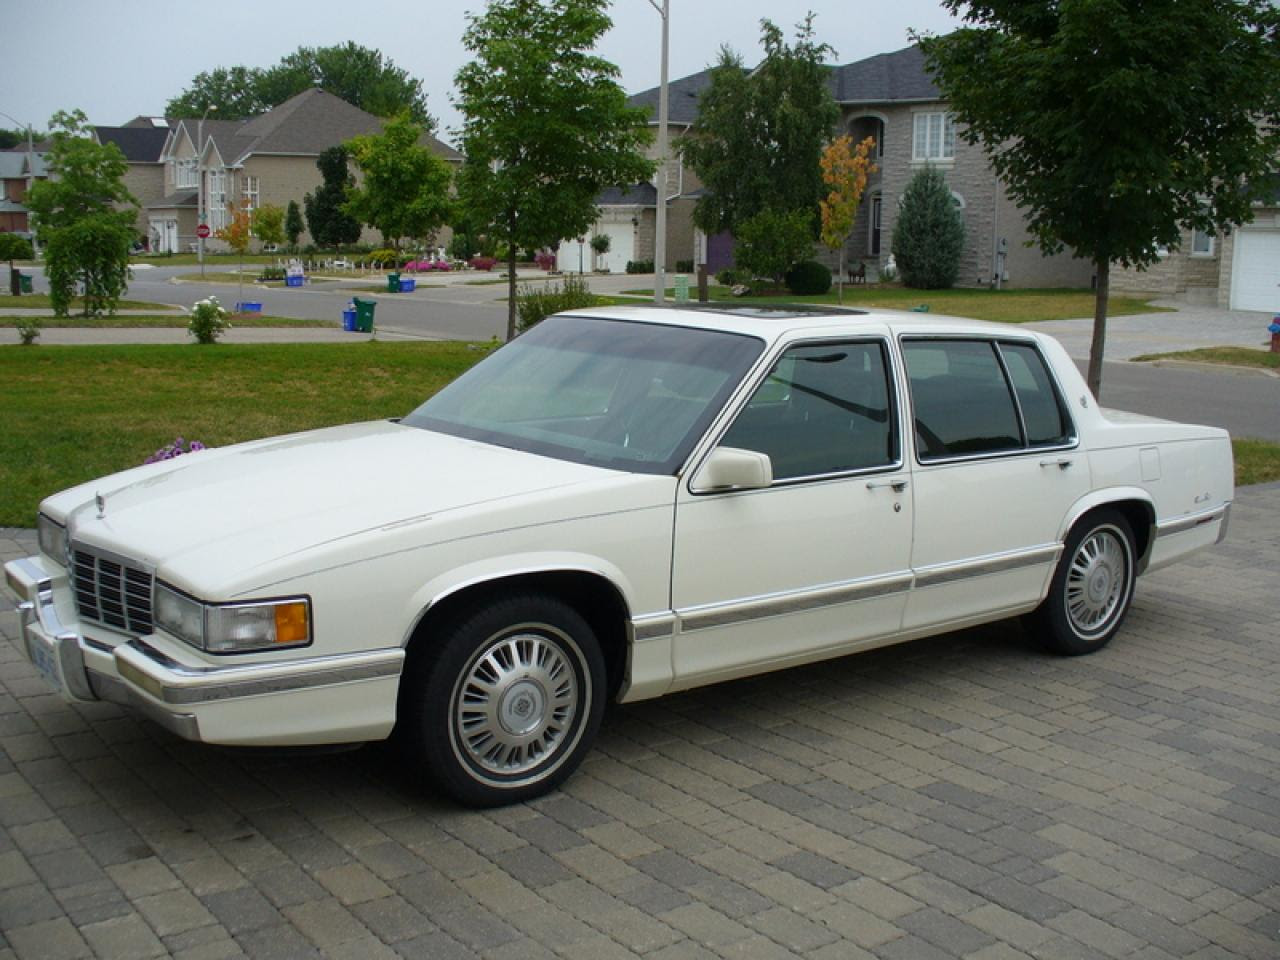 1992 Cadillac DeVille - Information and photos - Zomb Drive